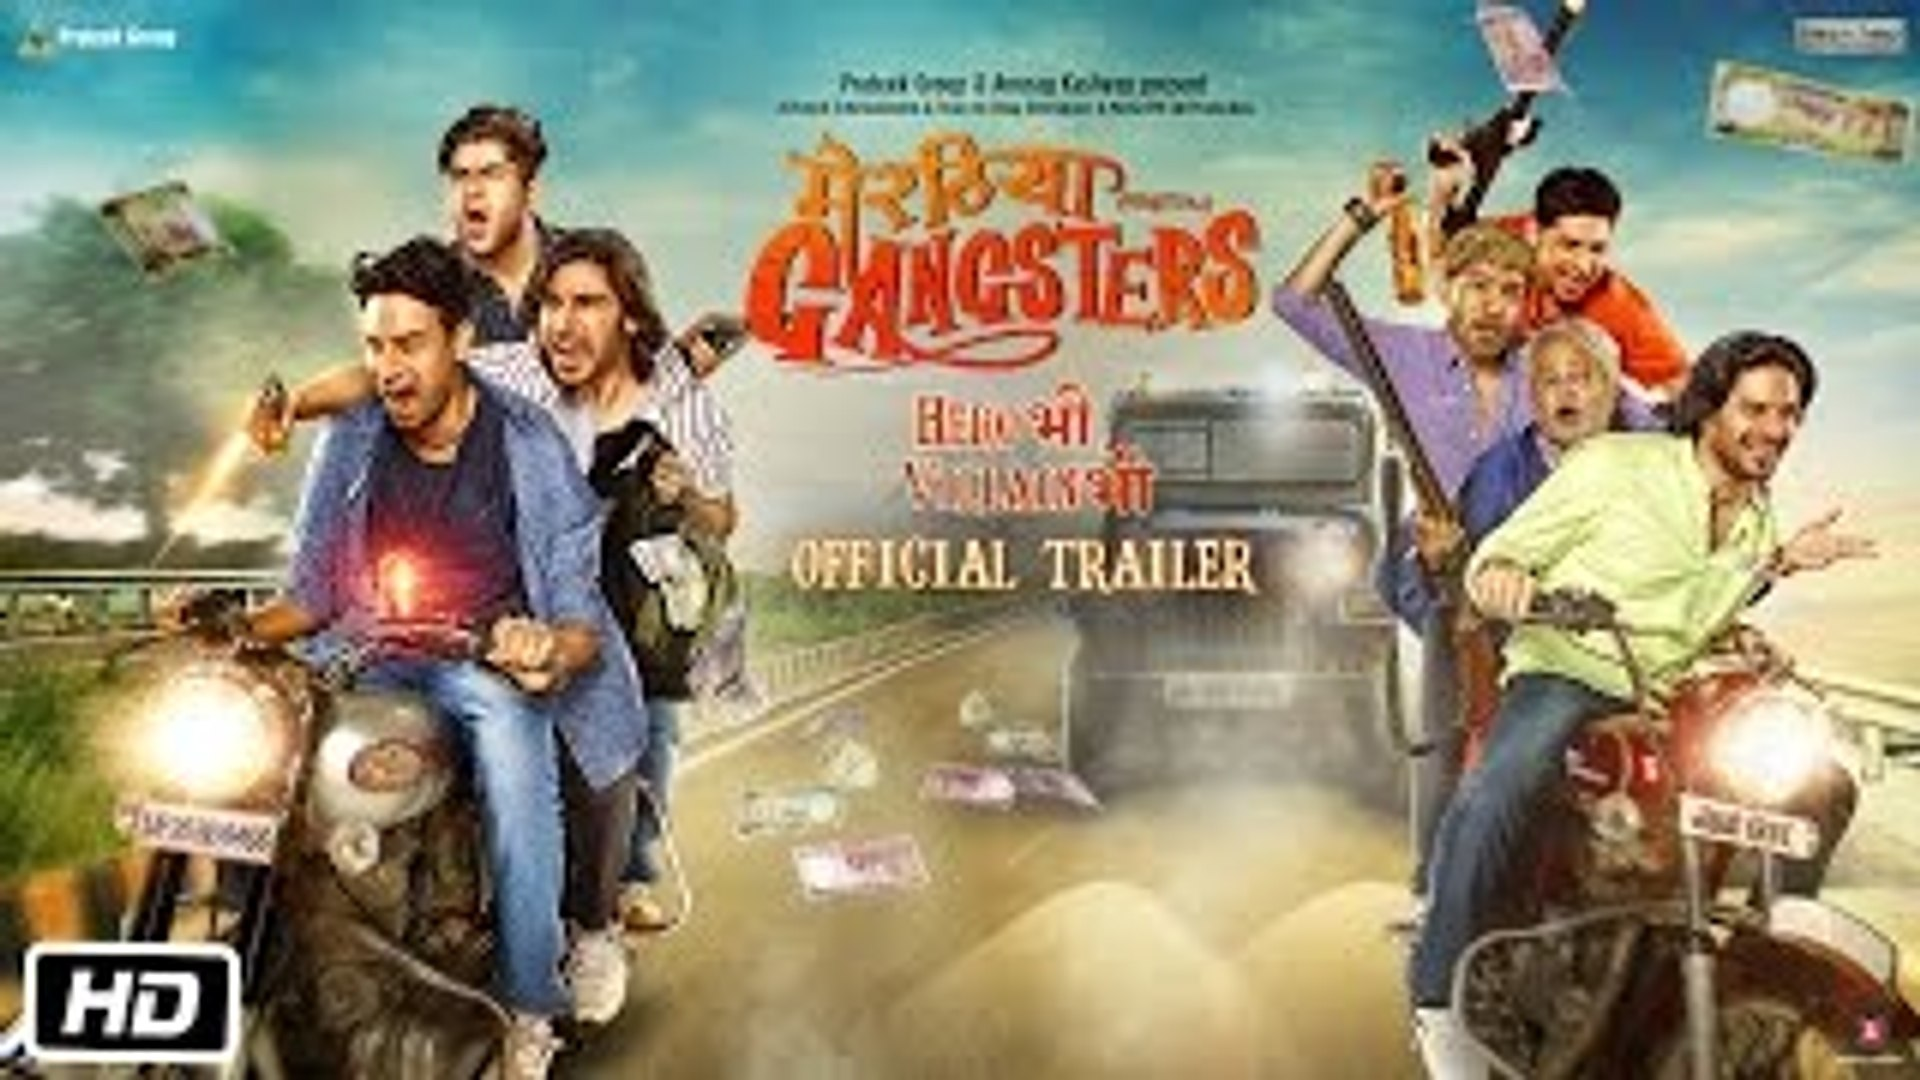 Meeruthiya Gangsters - Official Trailer - Anurag Kashyap, Zeishan Quadri - Releasing 18th Sept